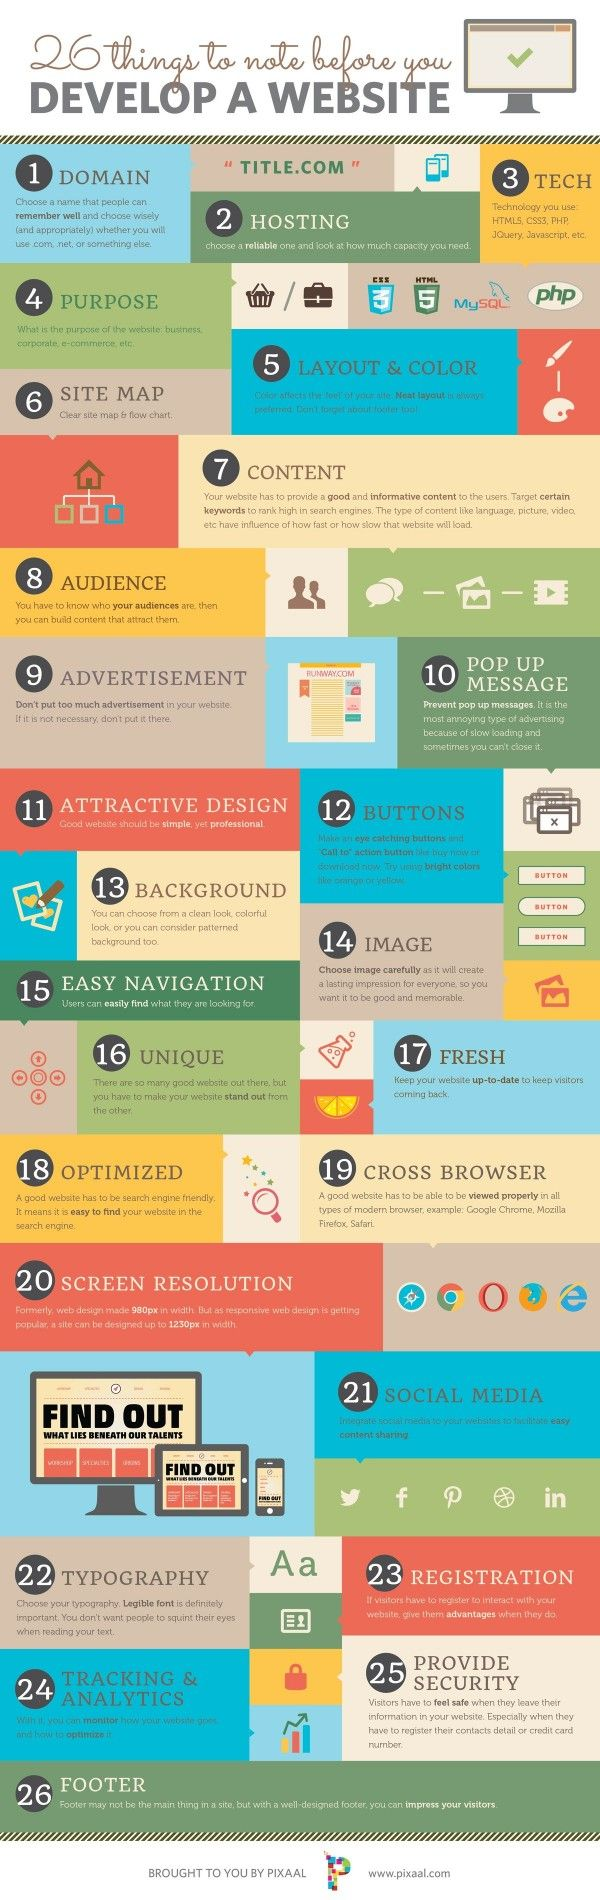 26 Things to Note Before You Develop a Website via Image Spark